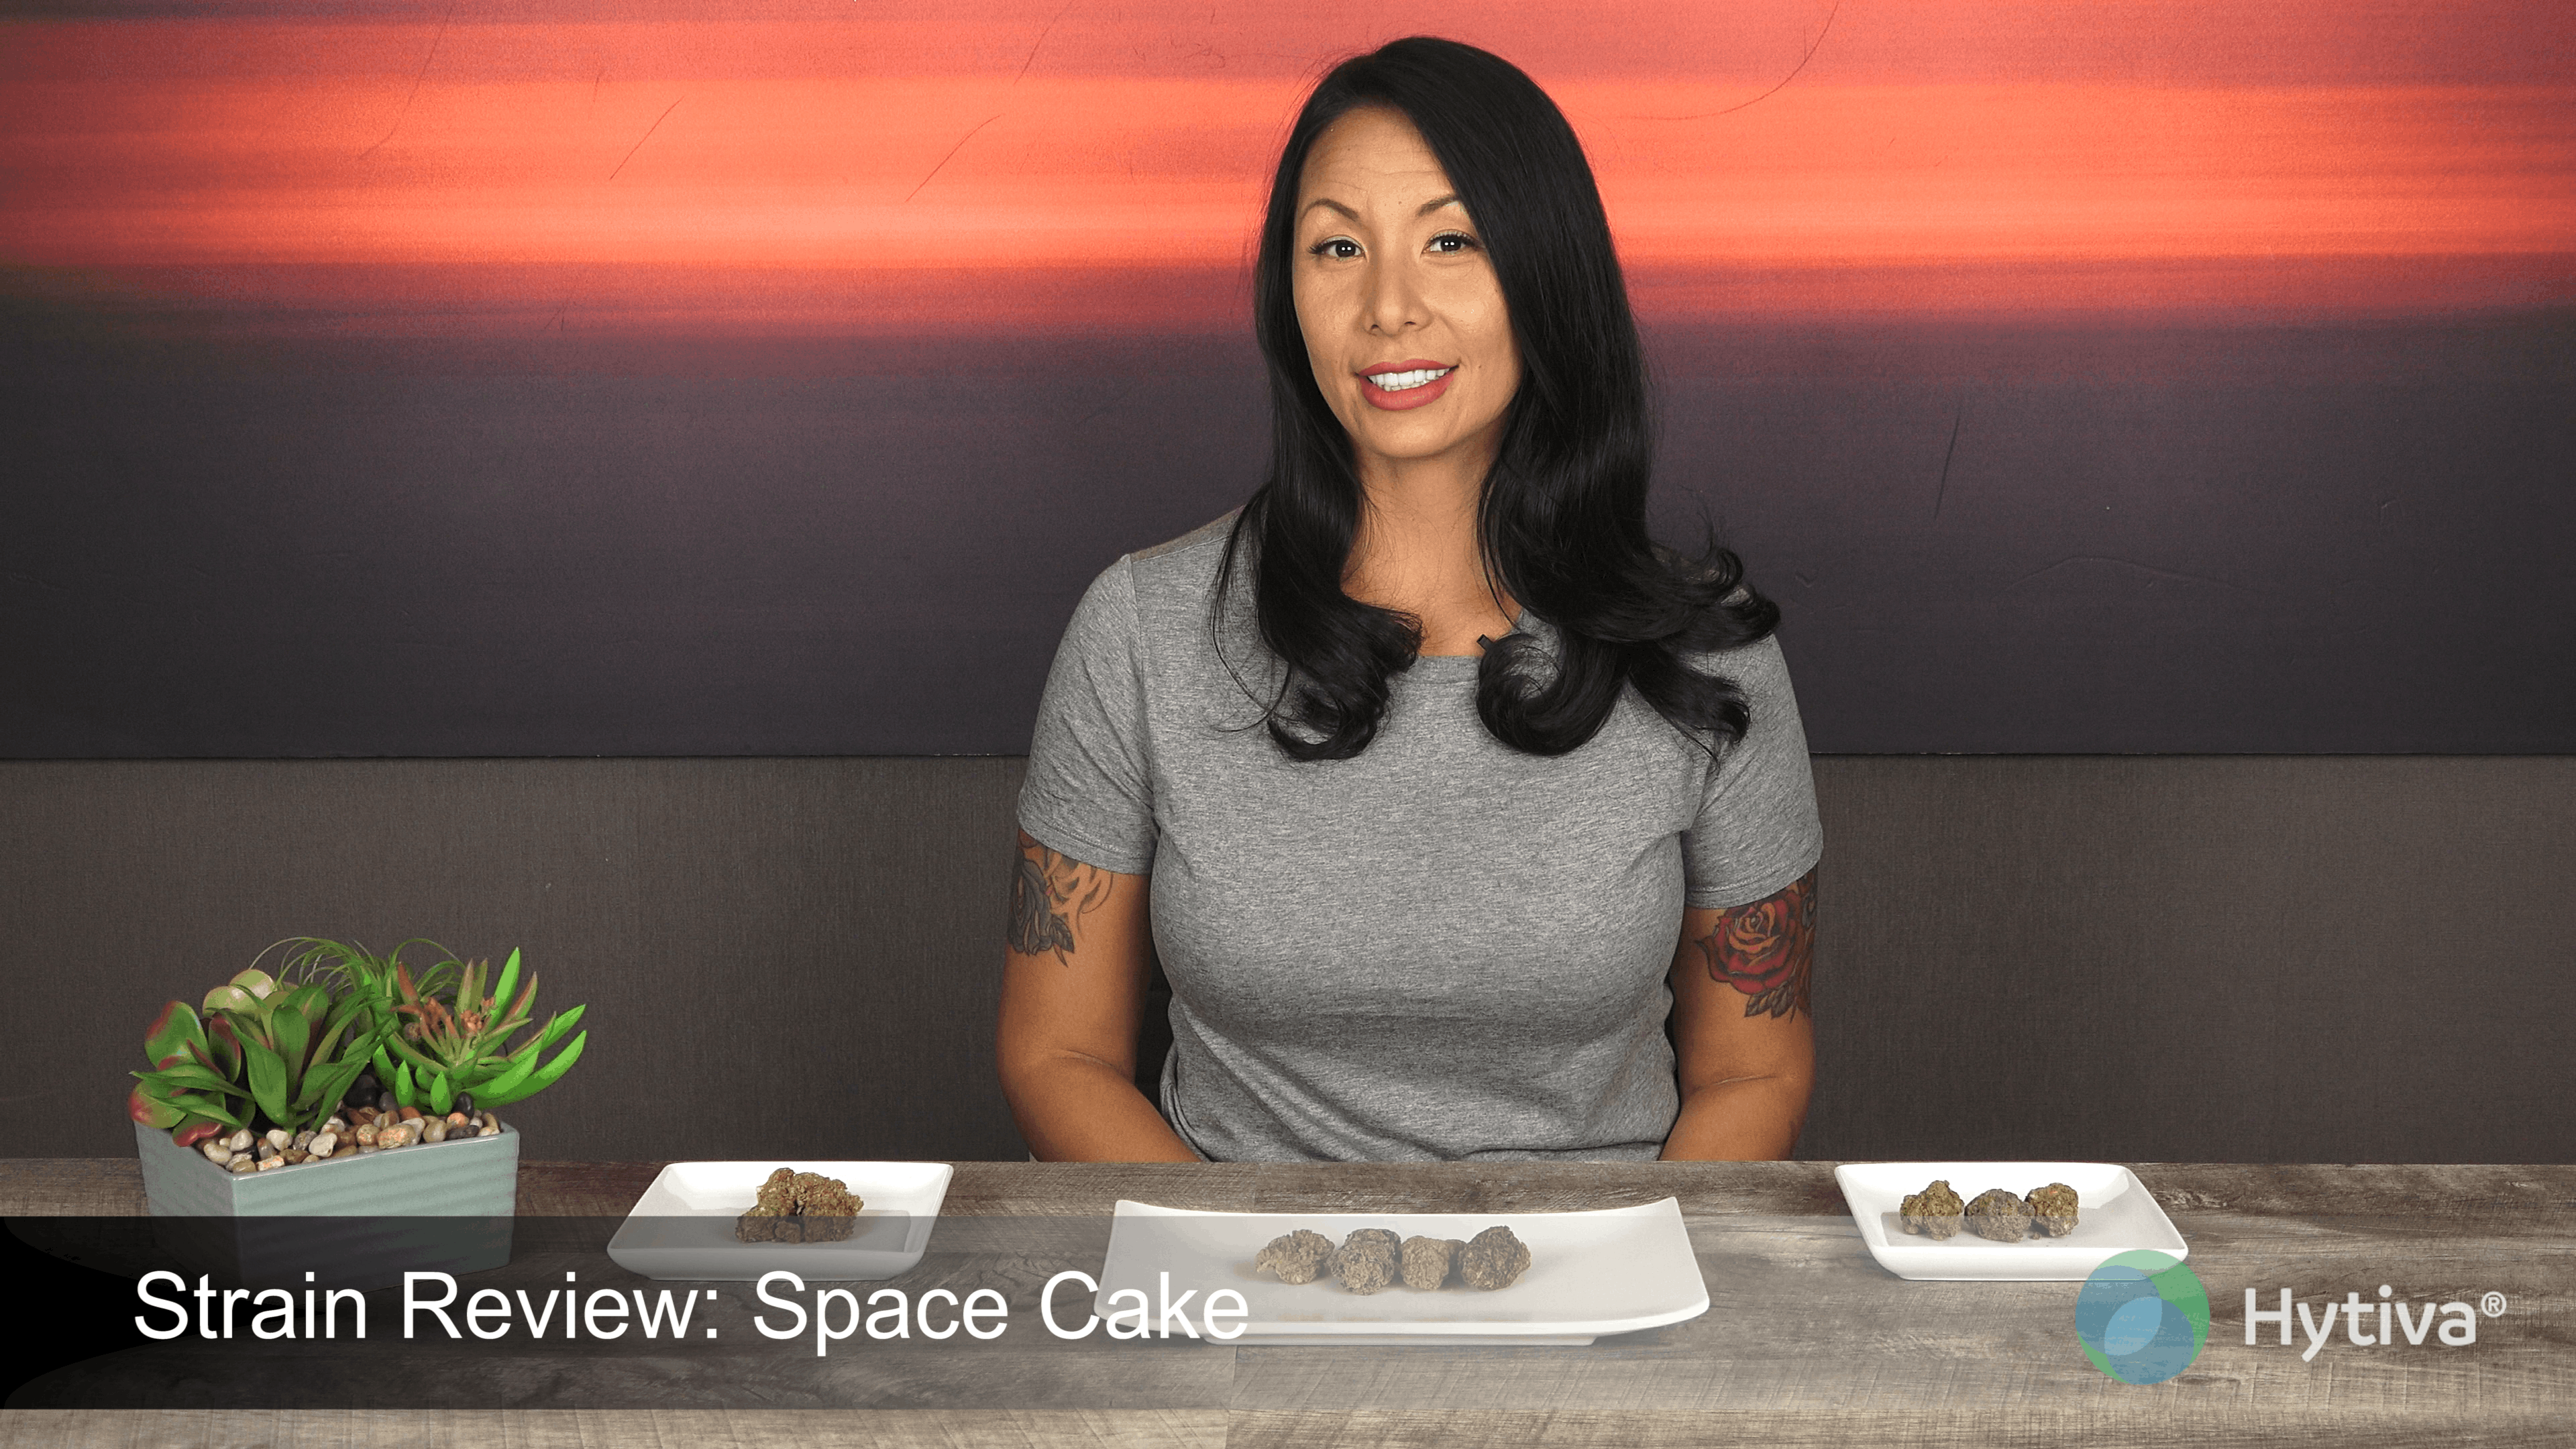 Strain Review : Space Cake